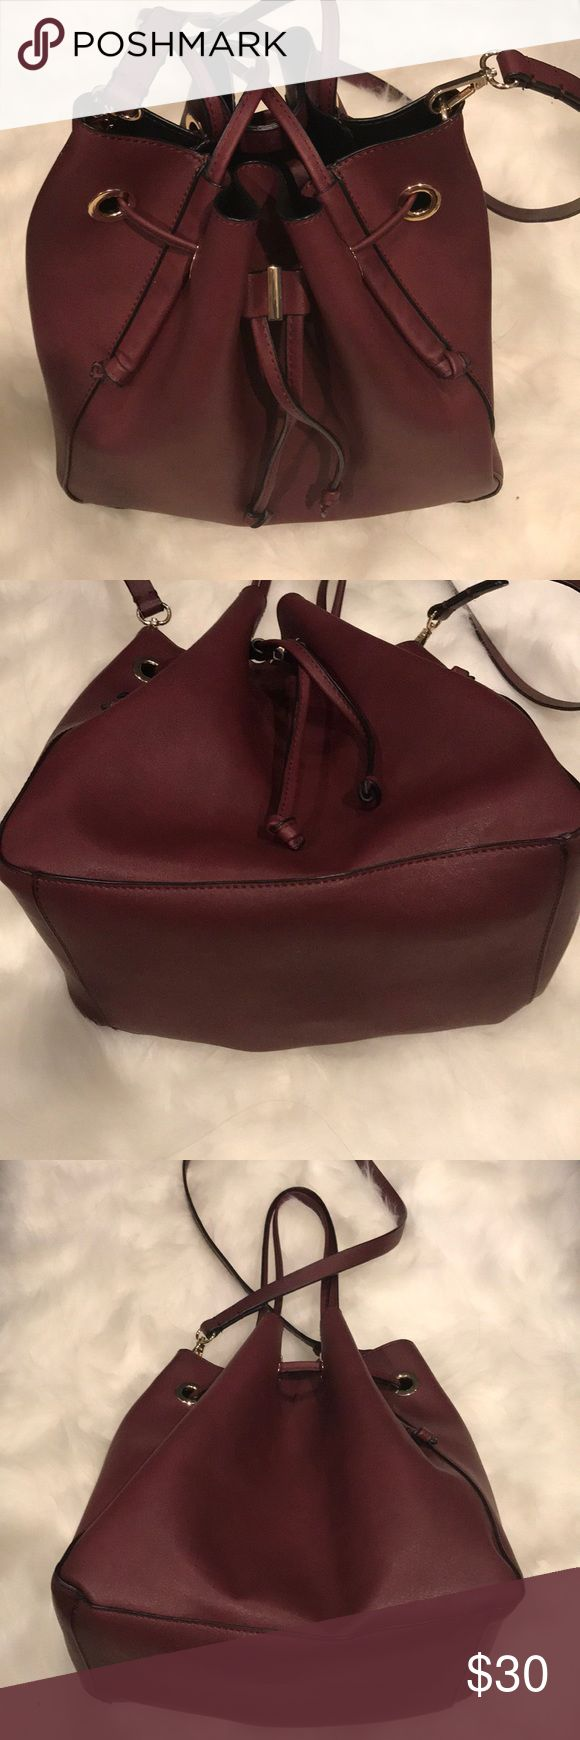 Zara handbag Zara handbag with handle and shoulder straps.  This can be worn as a tote or messenger bucket bag.  Color is wine/burgundy.  In excellent like new condition, this bag was barely worn.  No stains or tears. Zara Bags